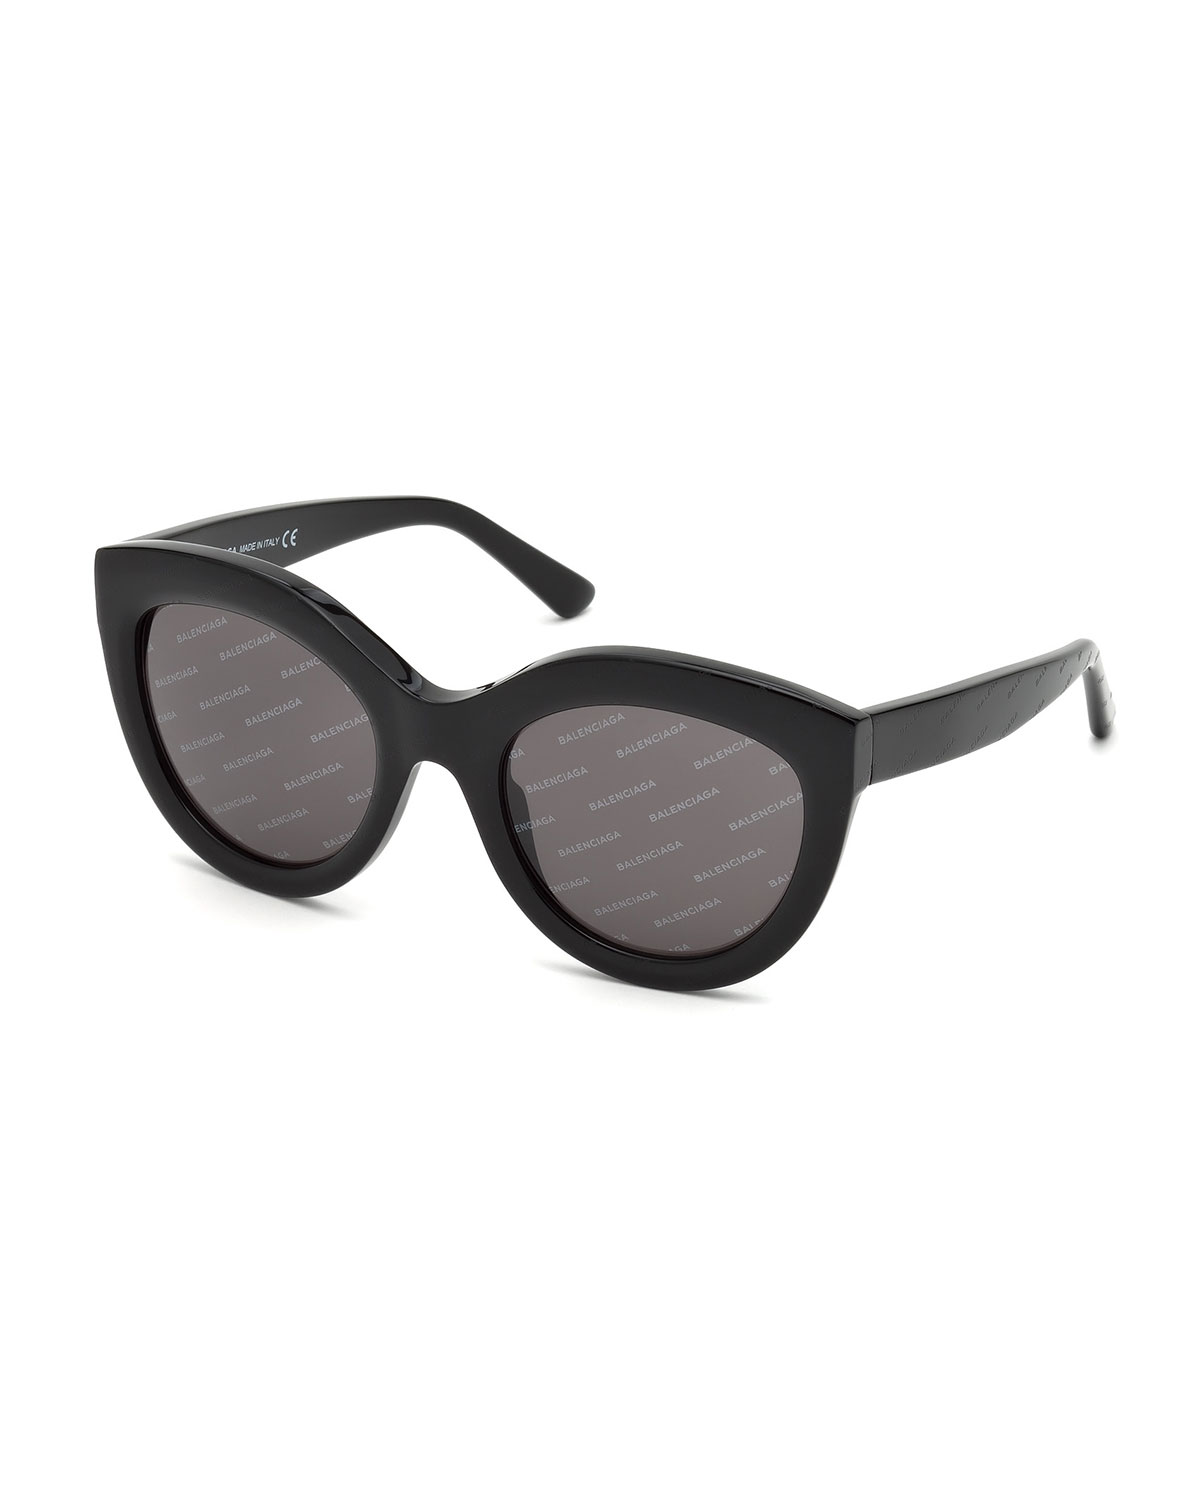 Logomania Shiny Acetate Cat Eye Sunglasses by Balenciaga